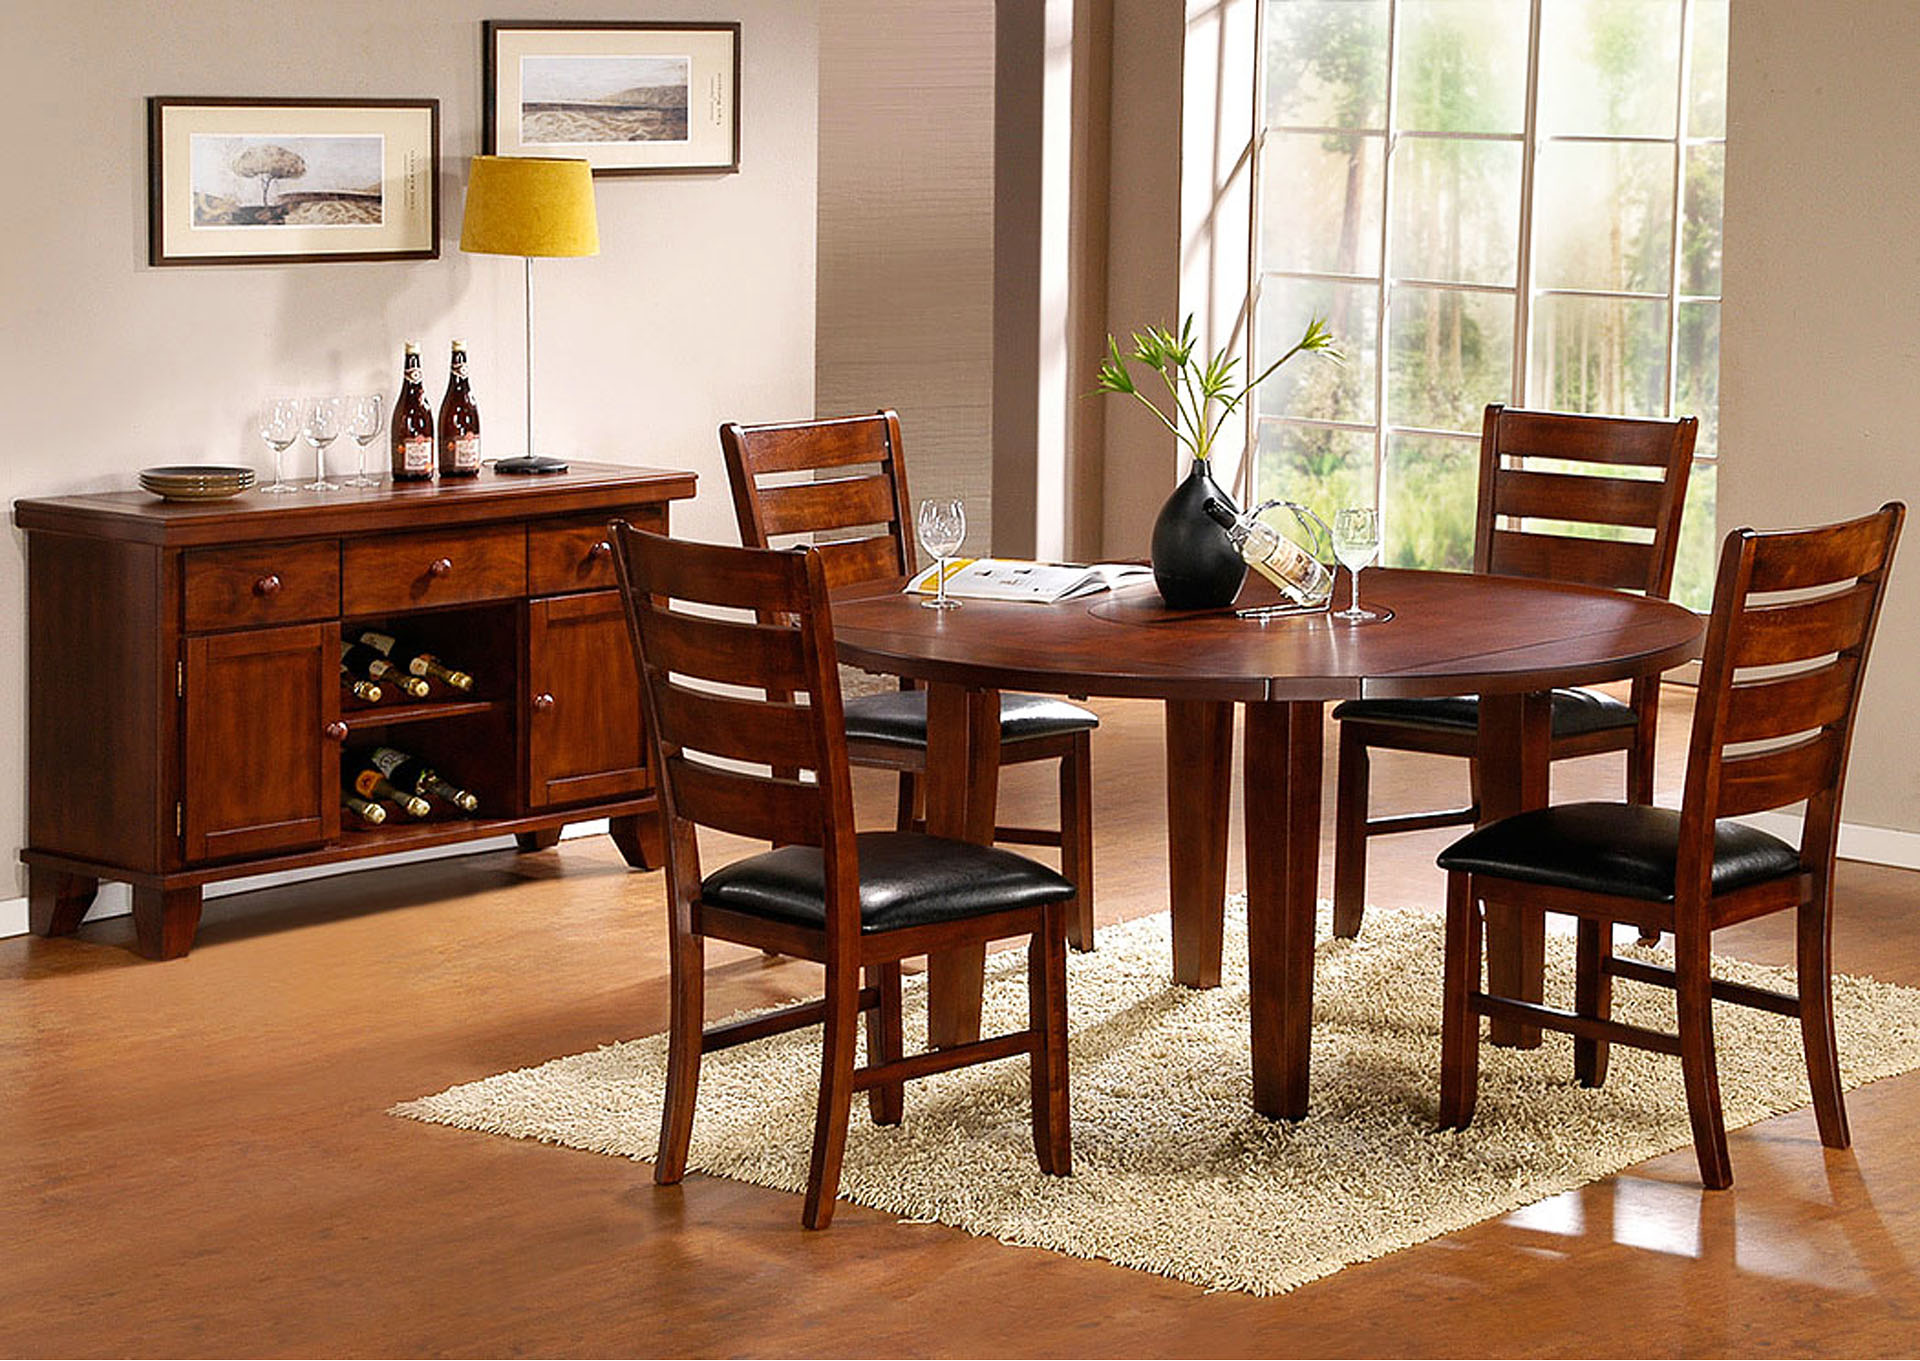 Nulook Furniture Ameillia Round Drop Leaf Dining Table W4 Side Chairs